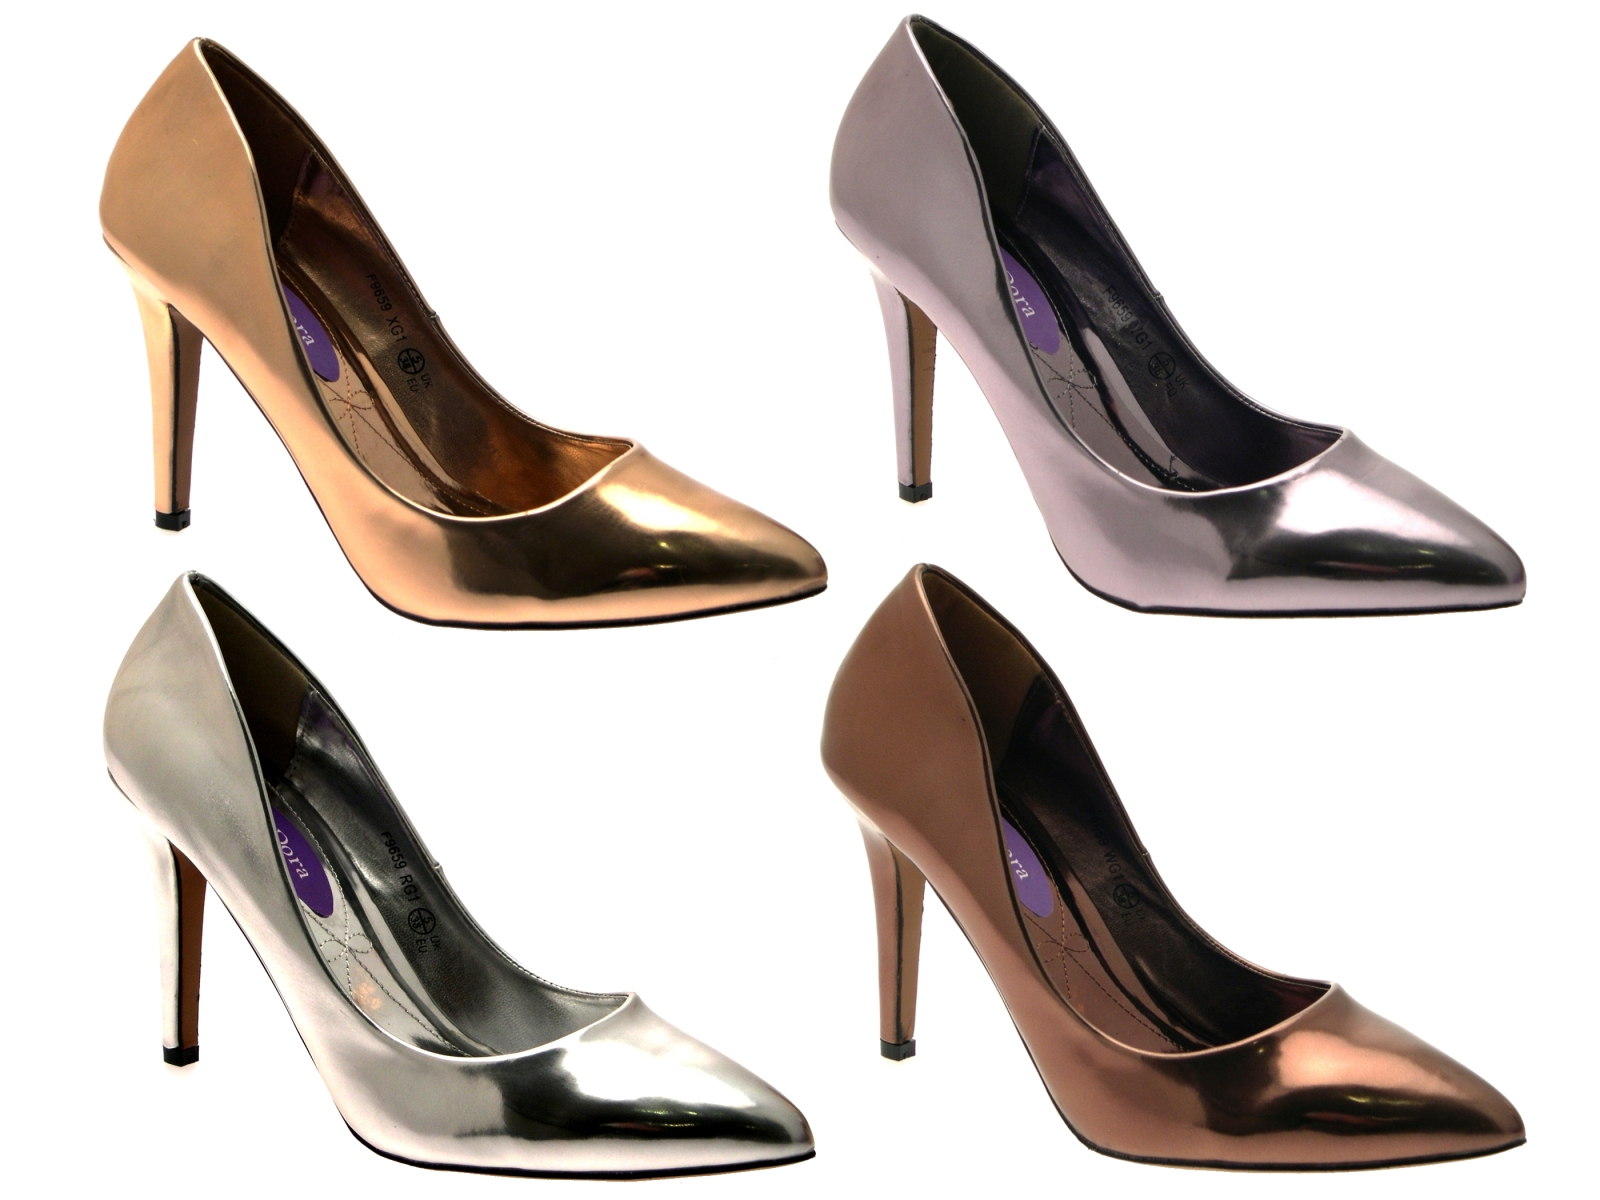 Womens-Metallic-Pointed-Toe-Court-Stiletto-High-Heels-Ladies-Work-Office-Shoes thumbnail 41